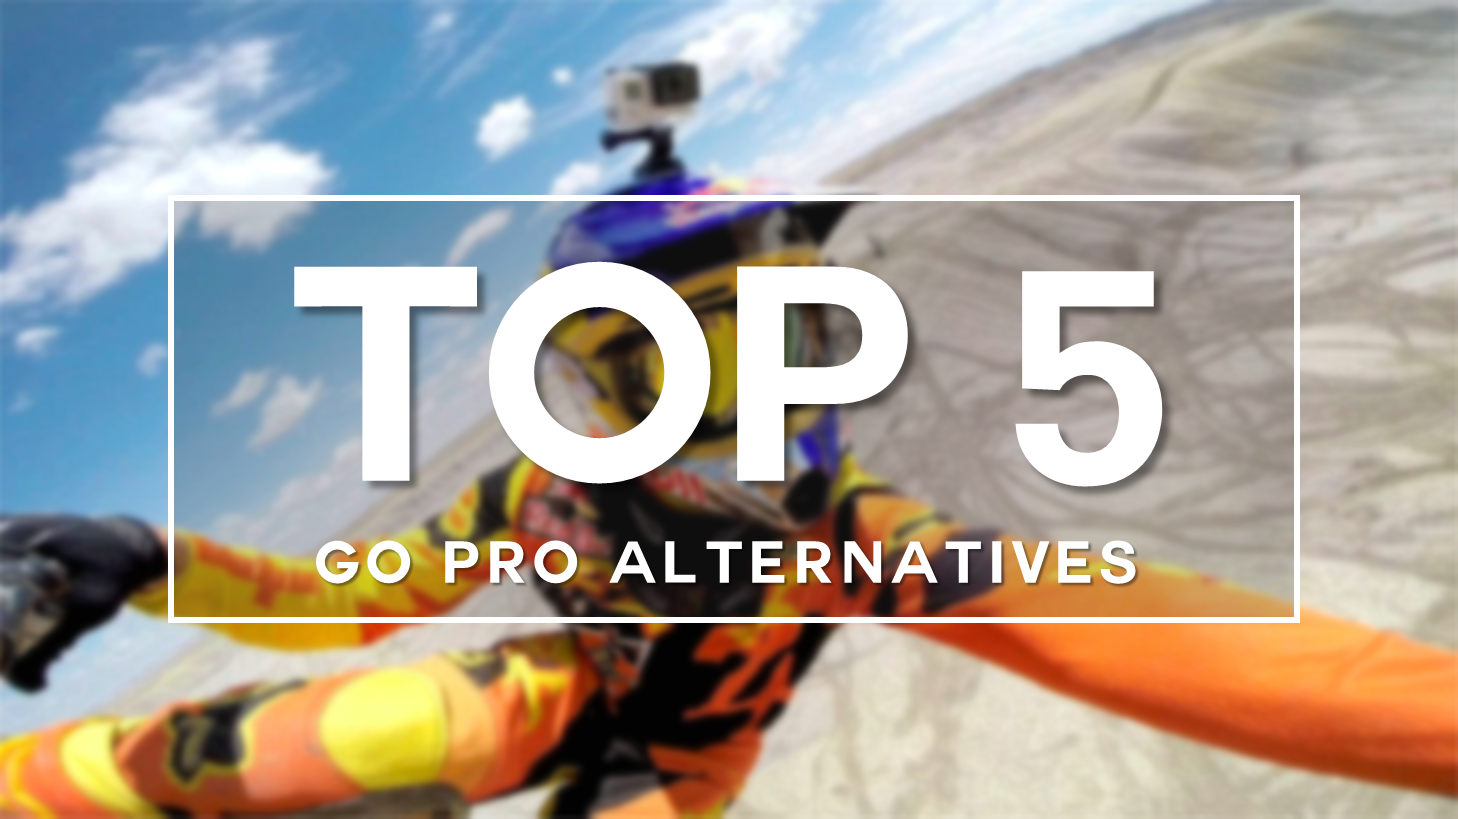 Top 5 GoPro Alternatives